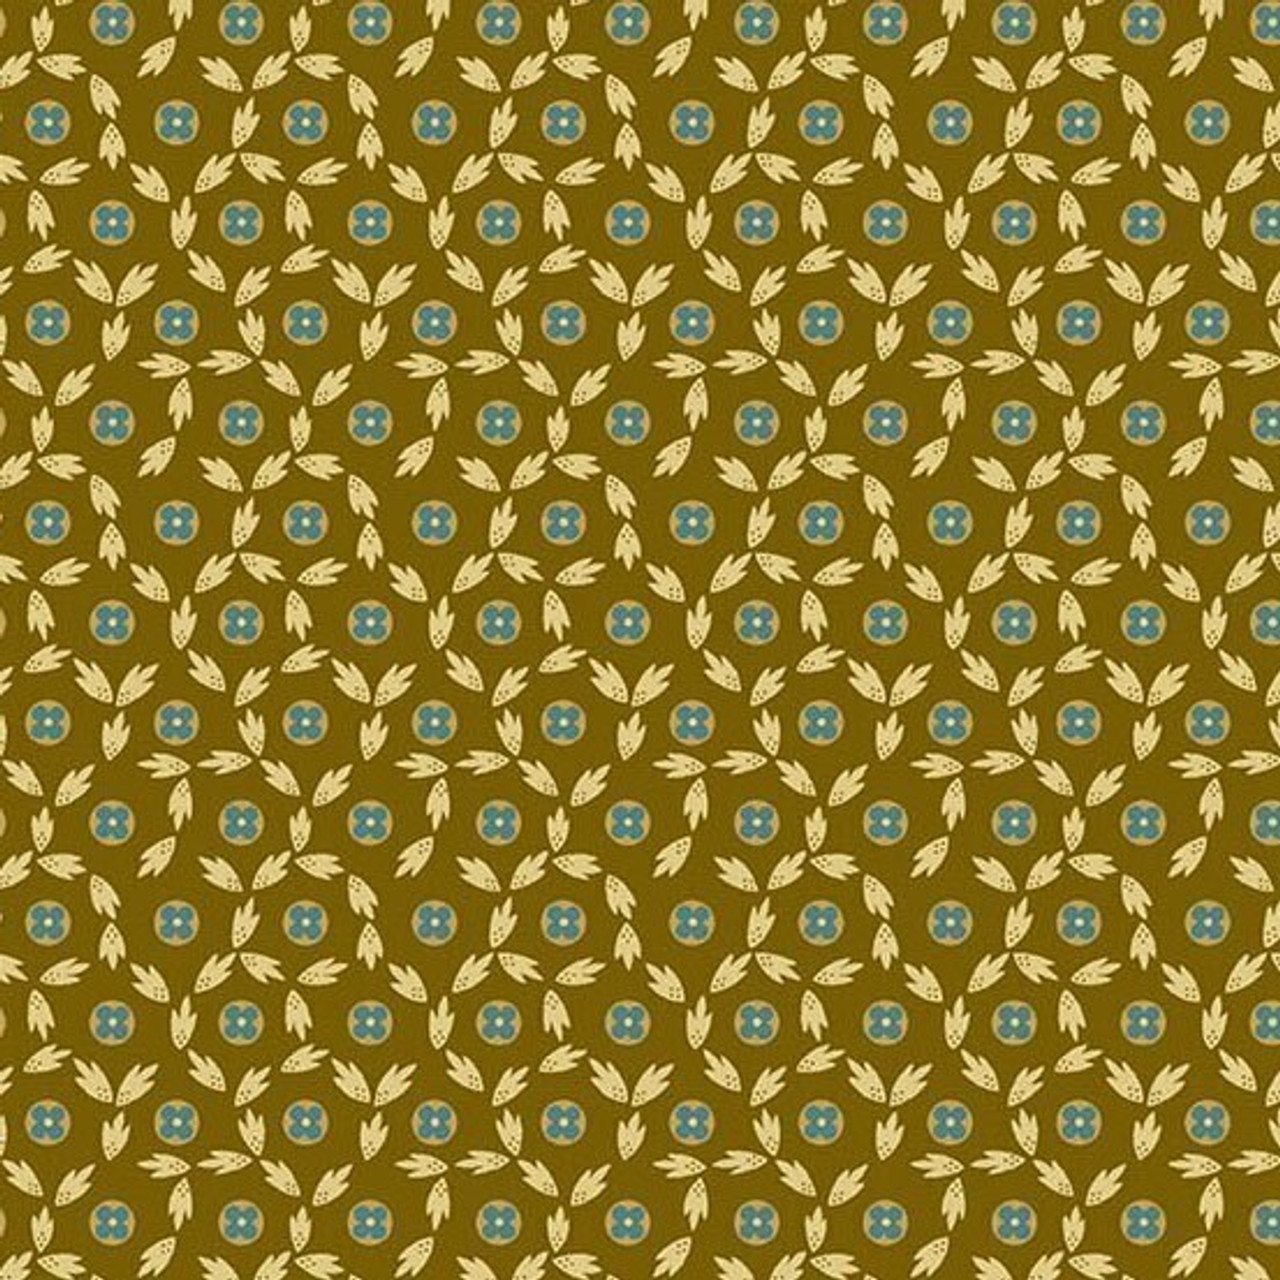 Maling Road: Button Flowers - Brown